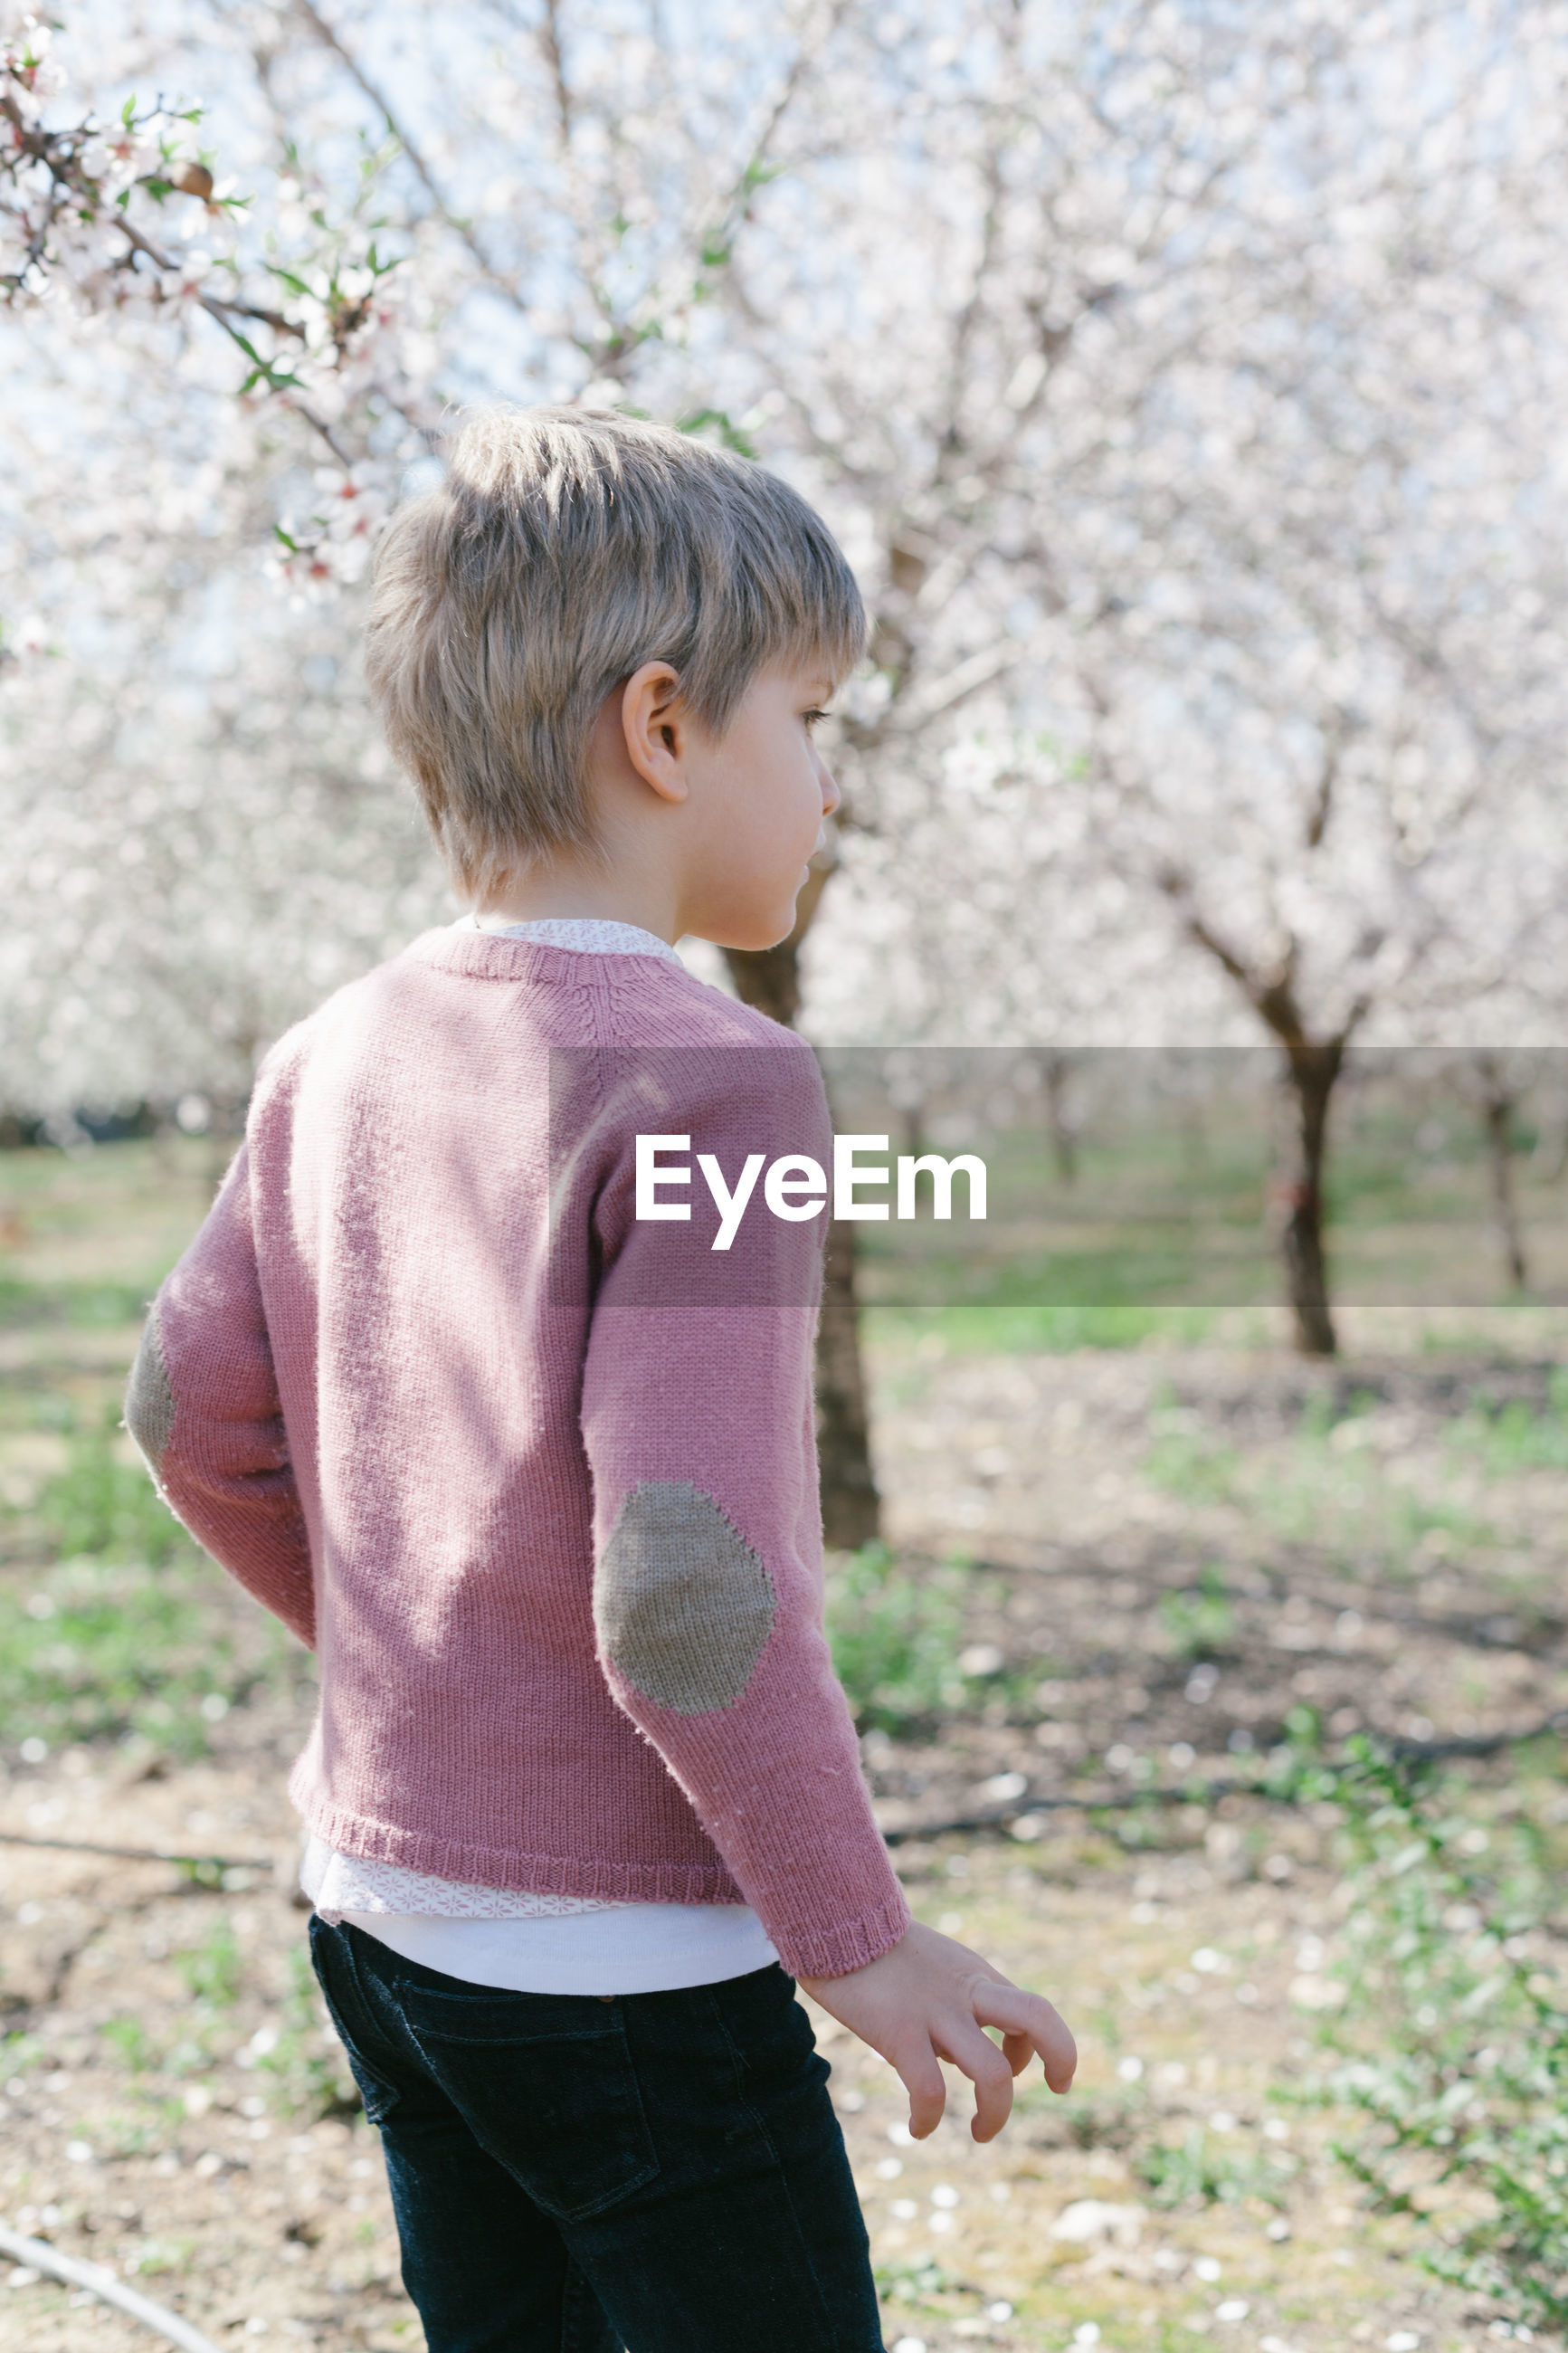 Boy standing against trees during winter